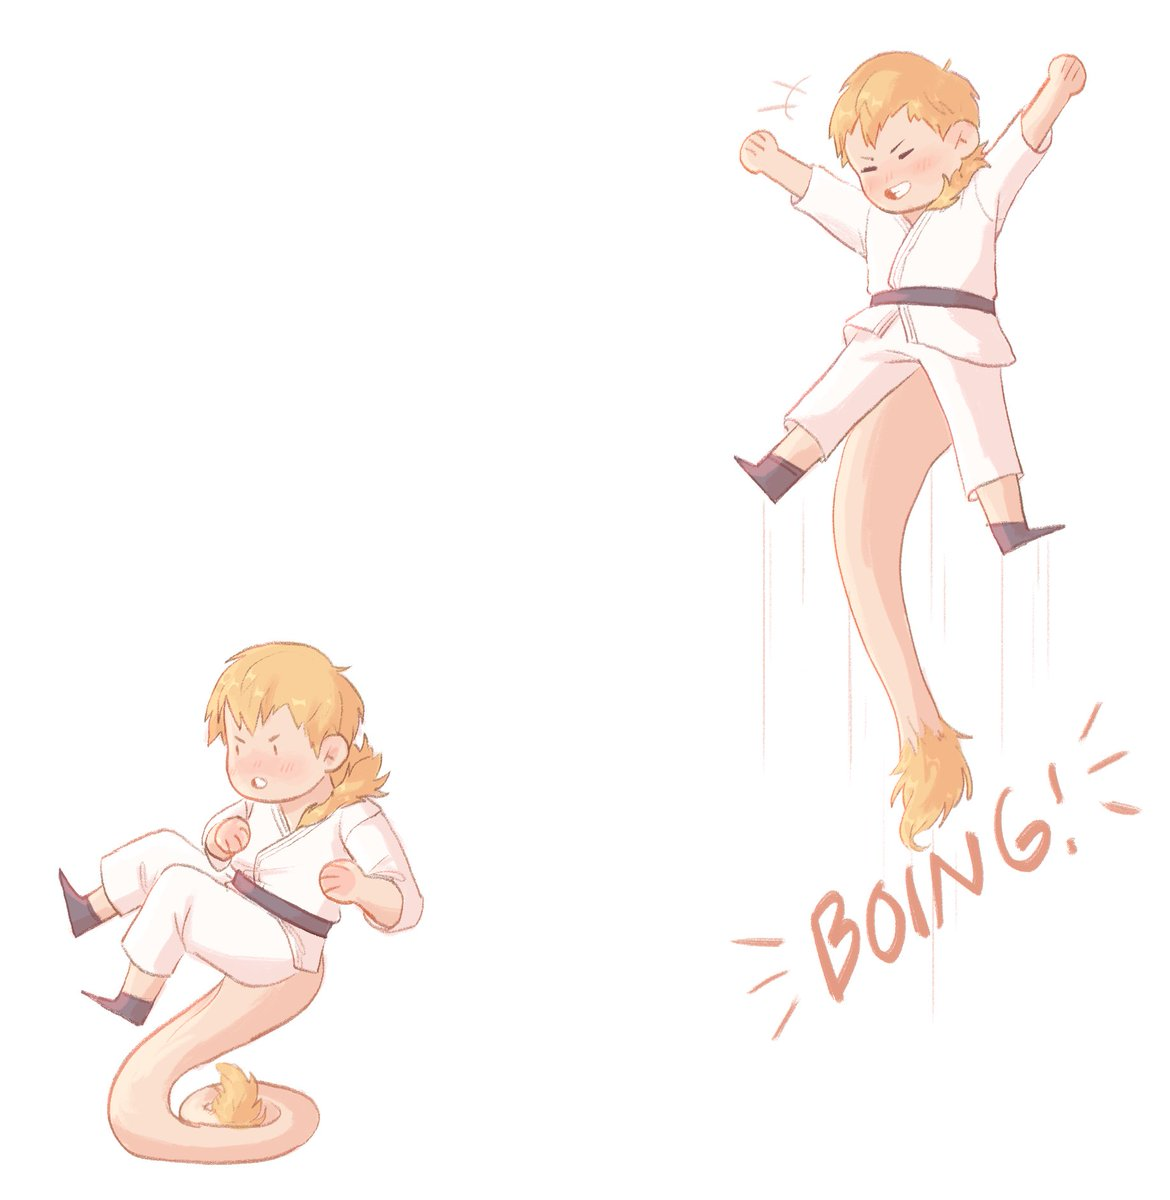 What if...Ojiro used his tail like this...  #bnha #ojiro